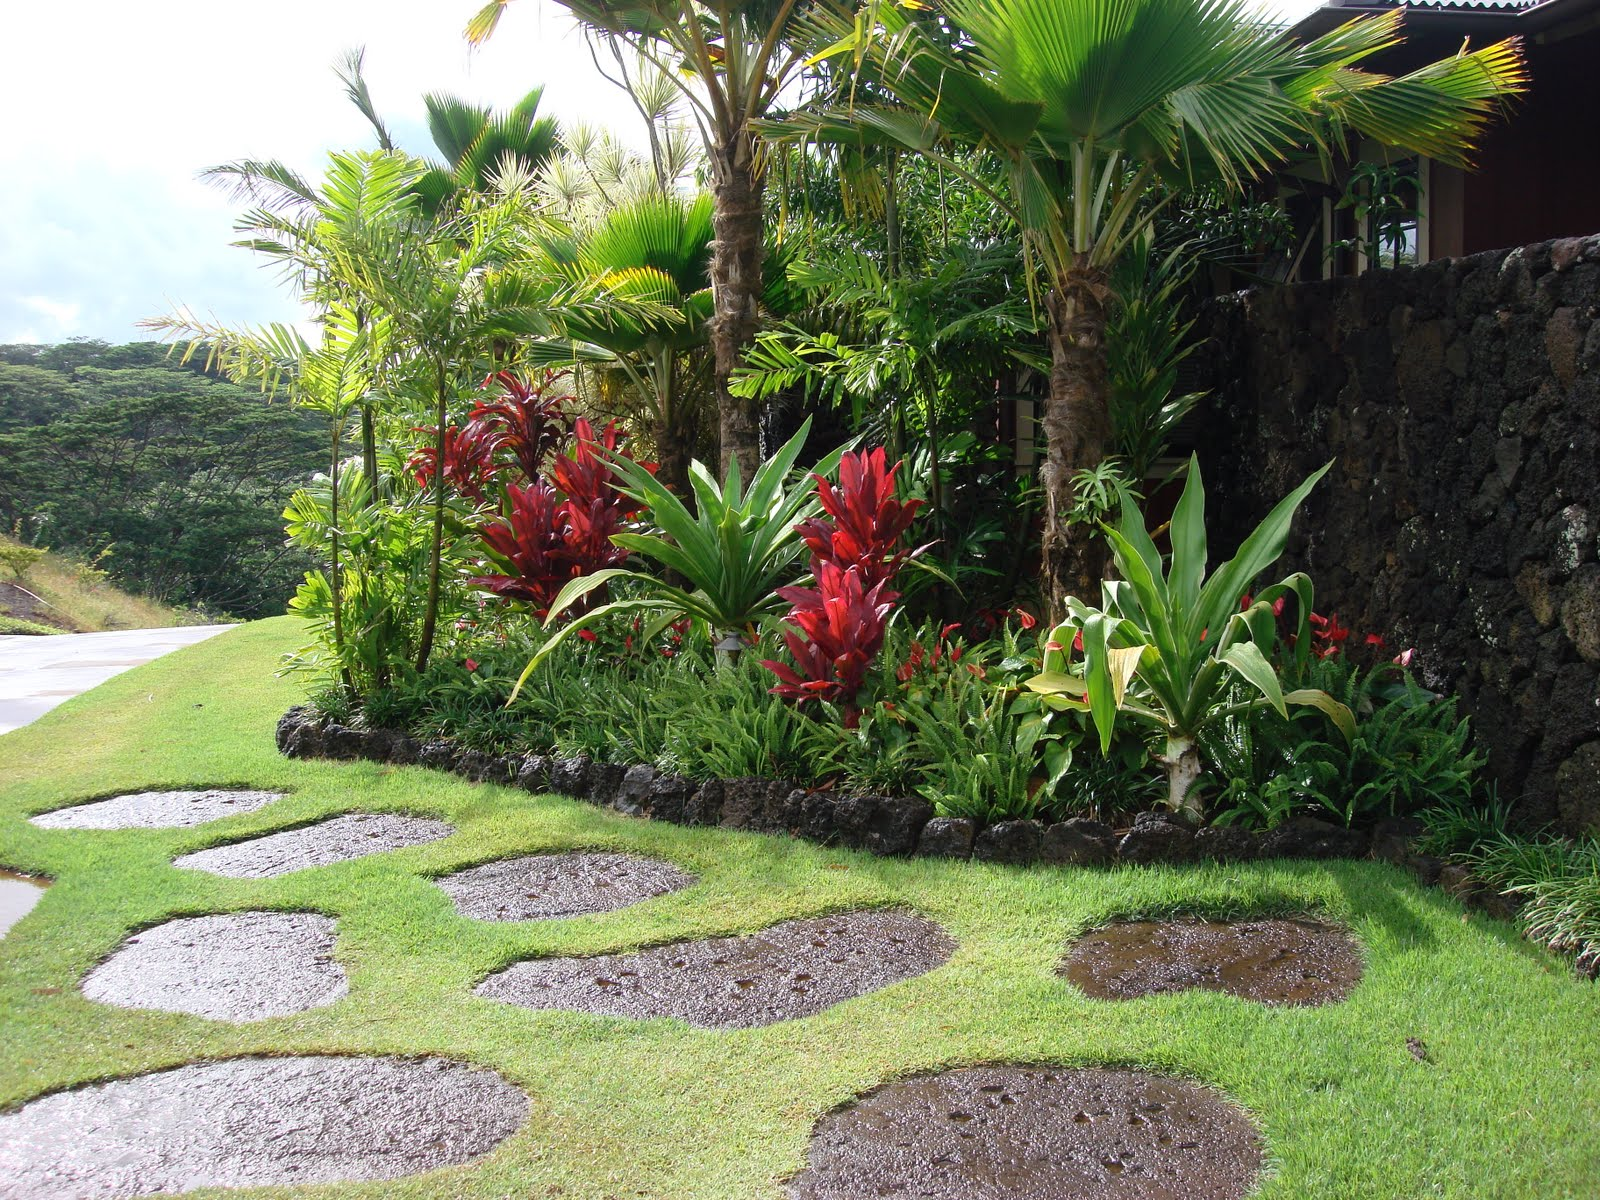 Kauai landscaper no ka oi landscape services blog for Landscaping plants